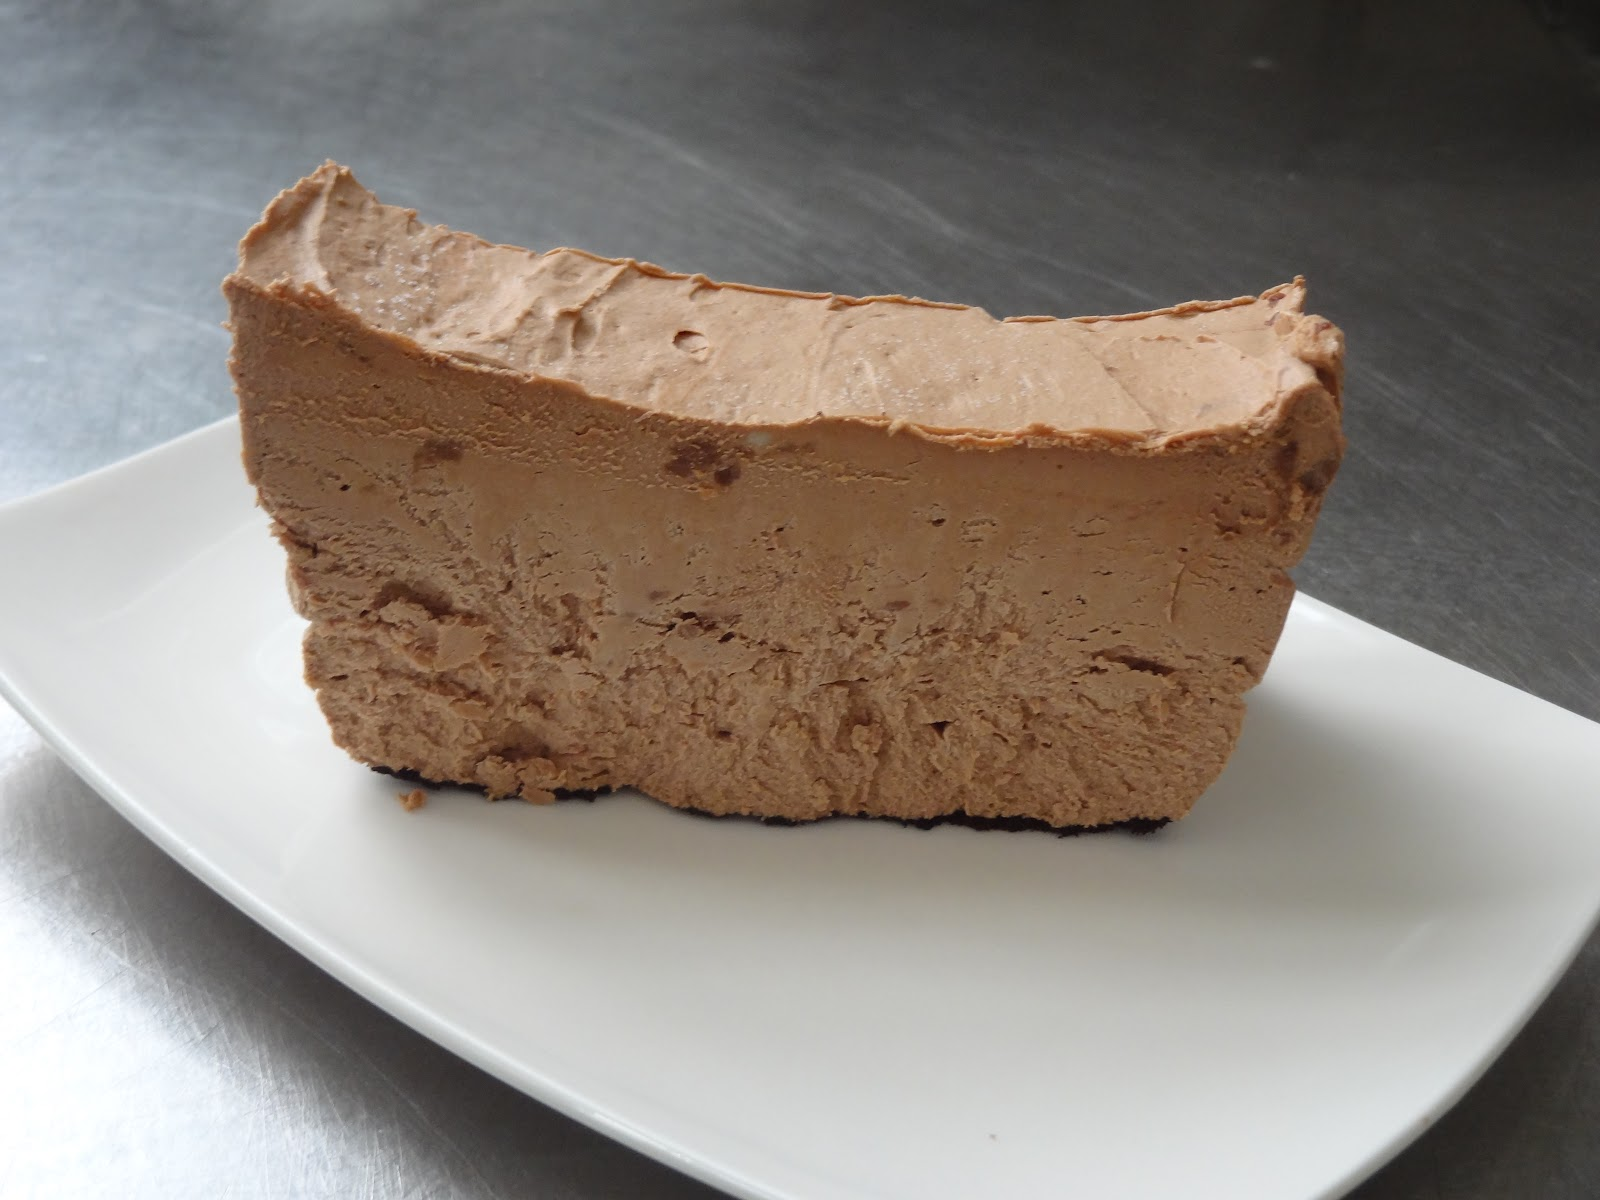 Power home solutions chocolate peanut butter dessert for Desserts to make with peanut butter